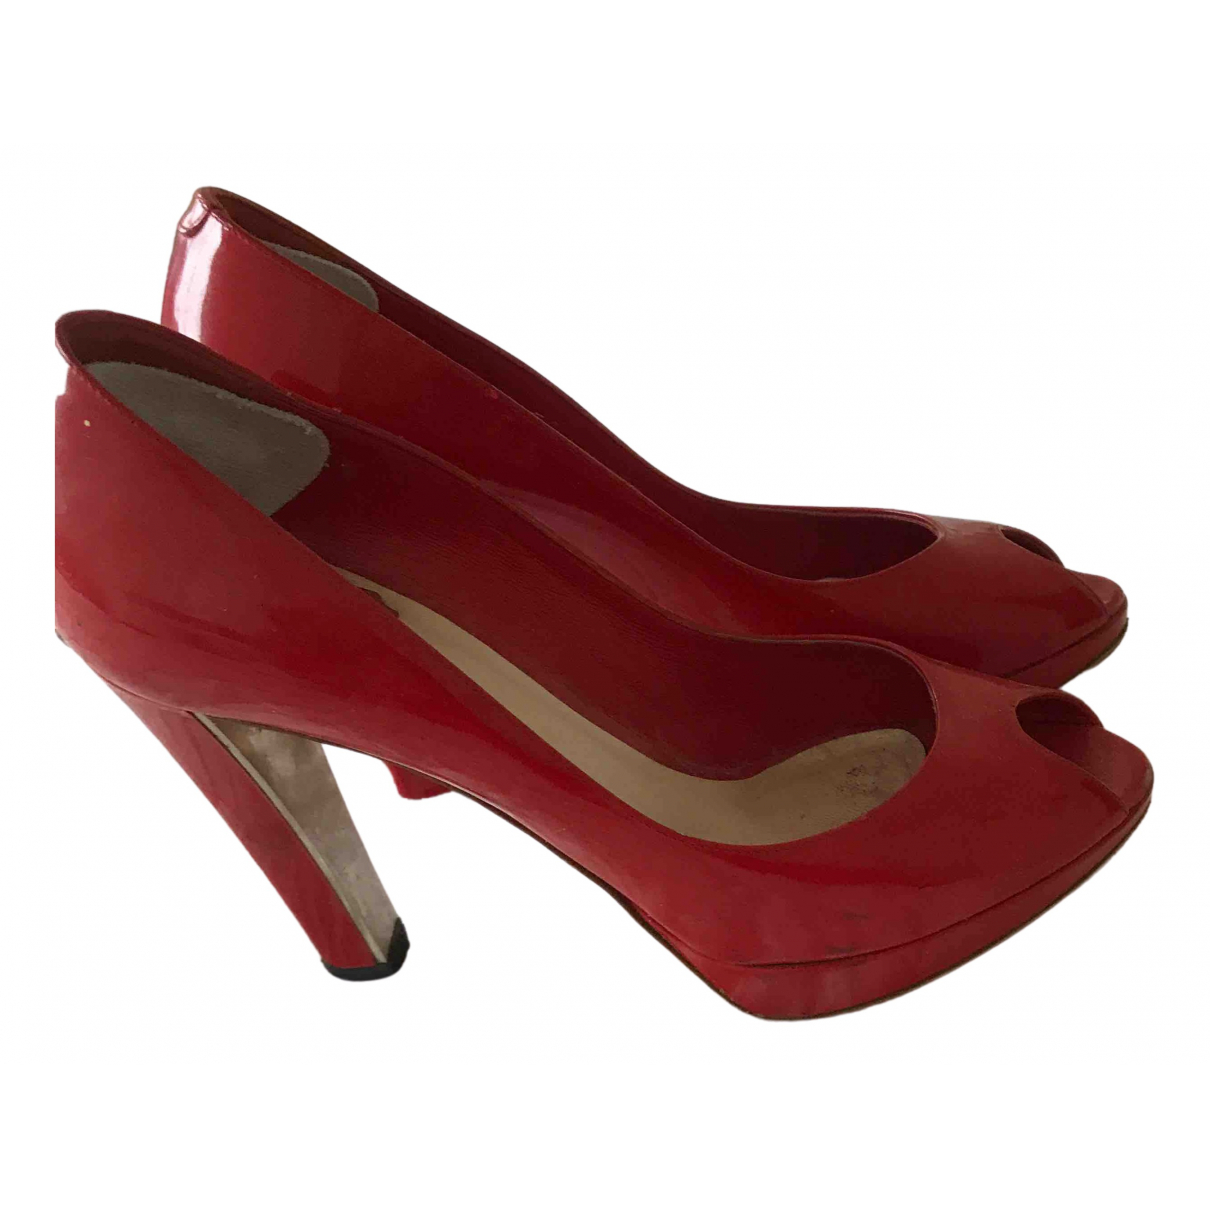 Dior \N Red Patent leather Heels for Women 38 EU